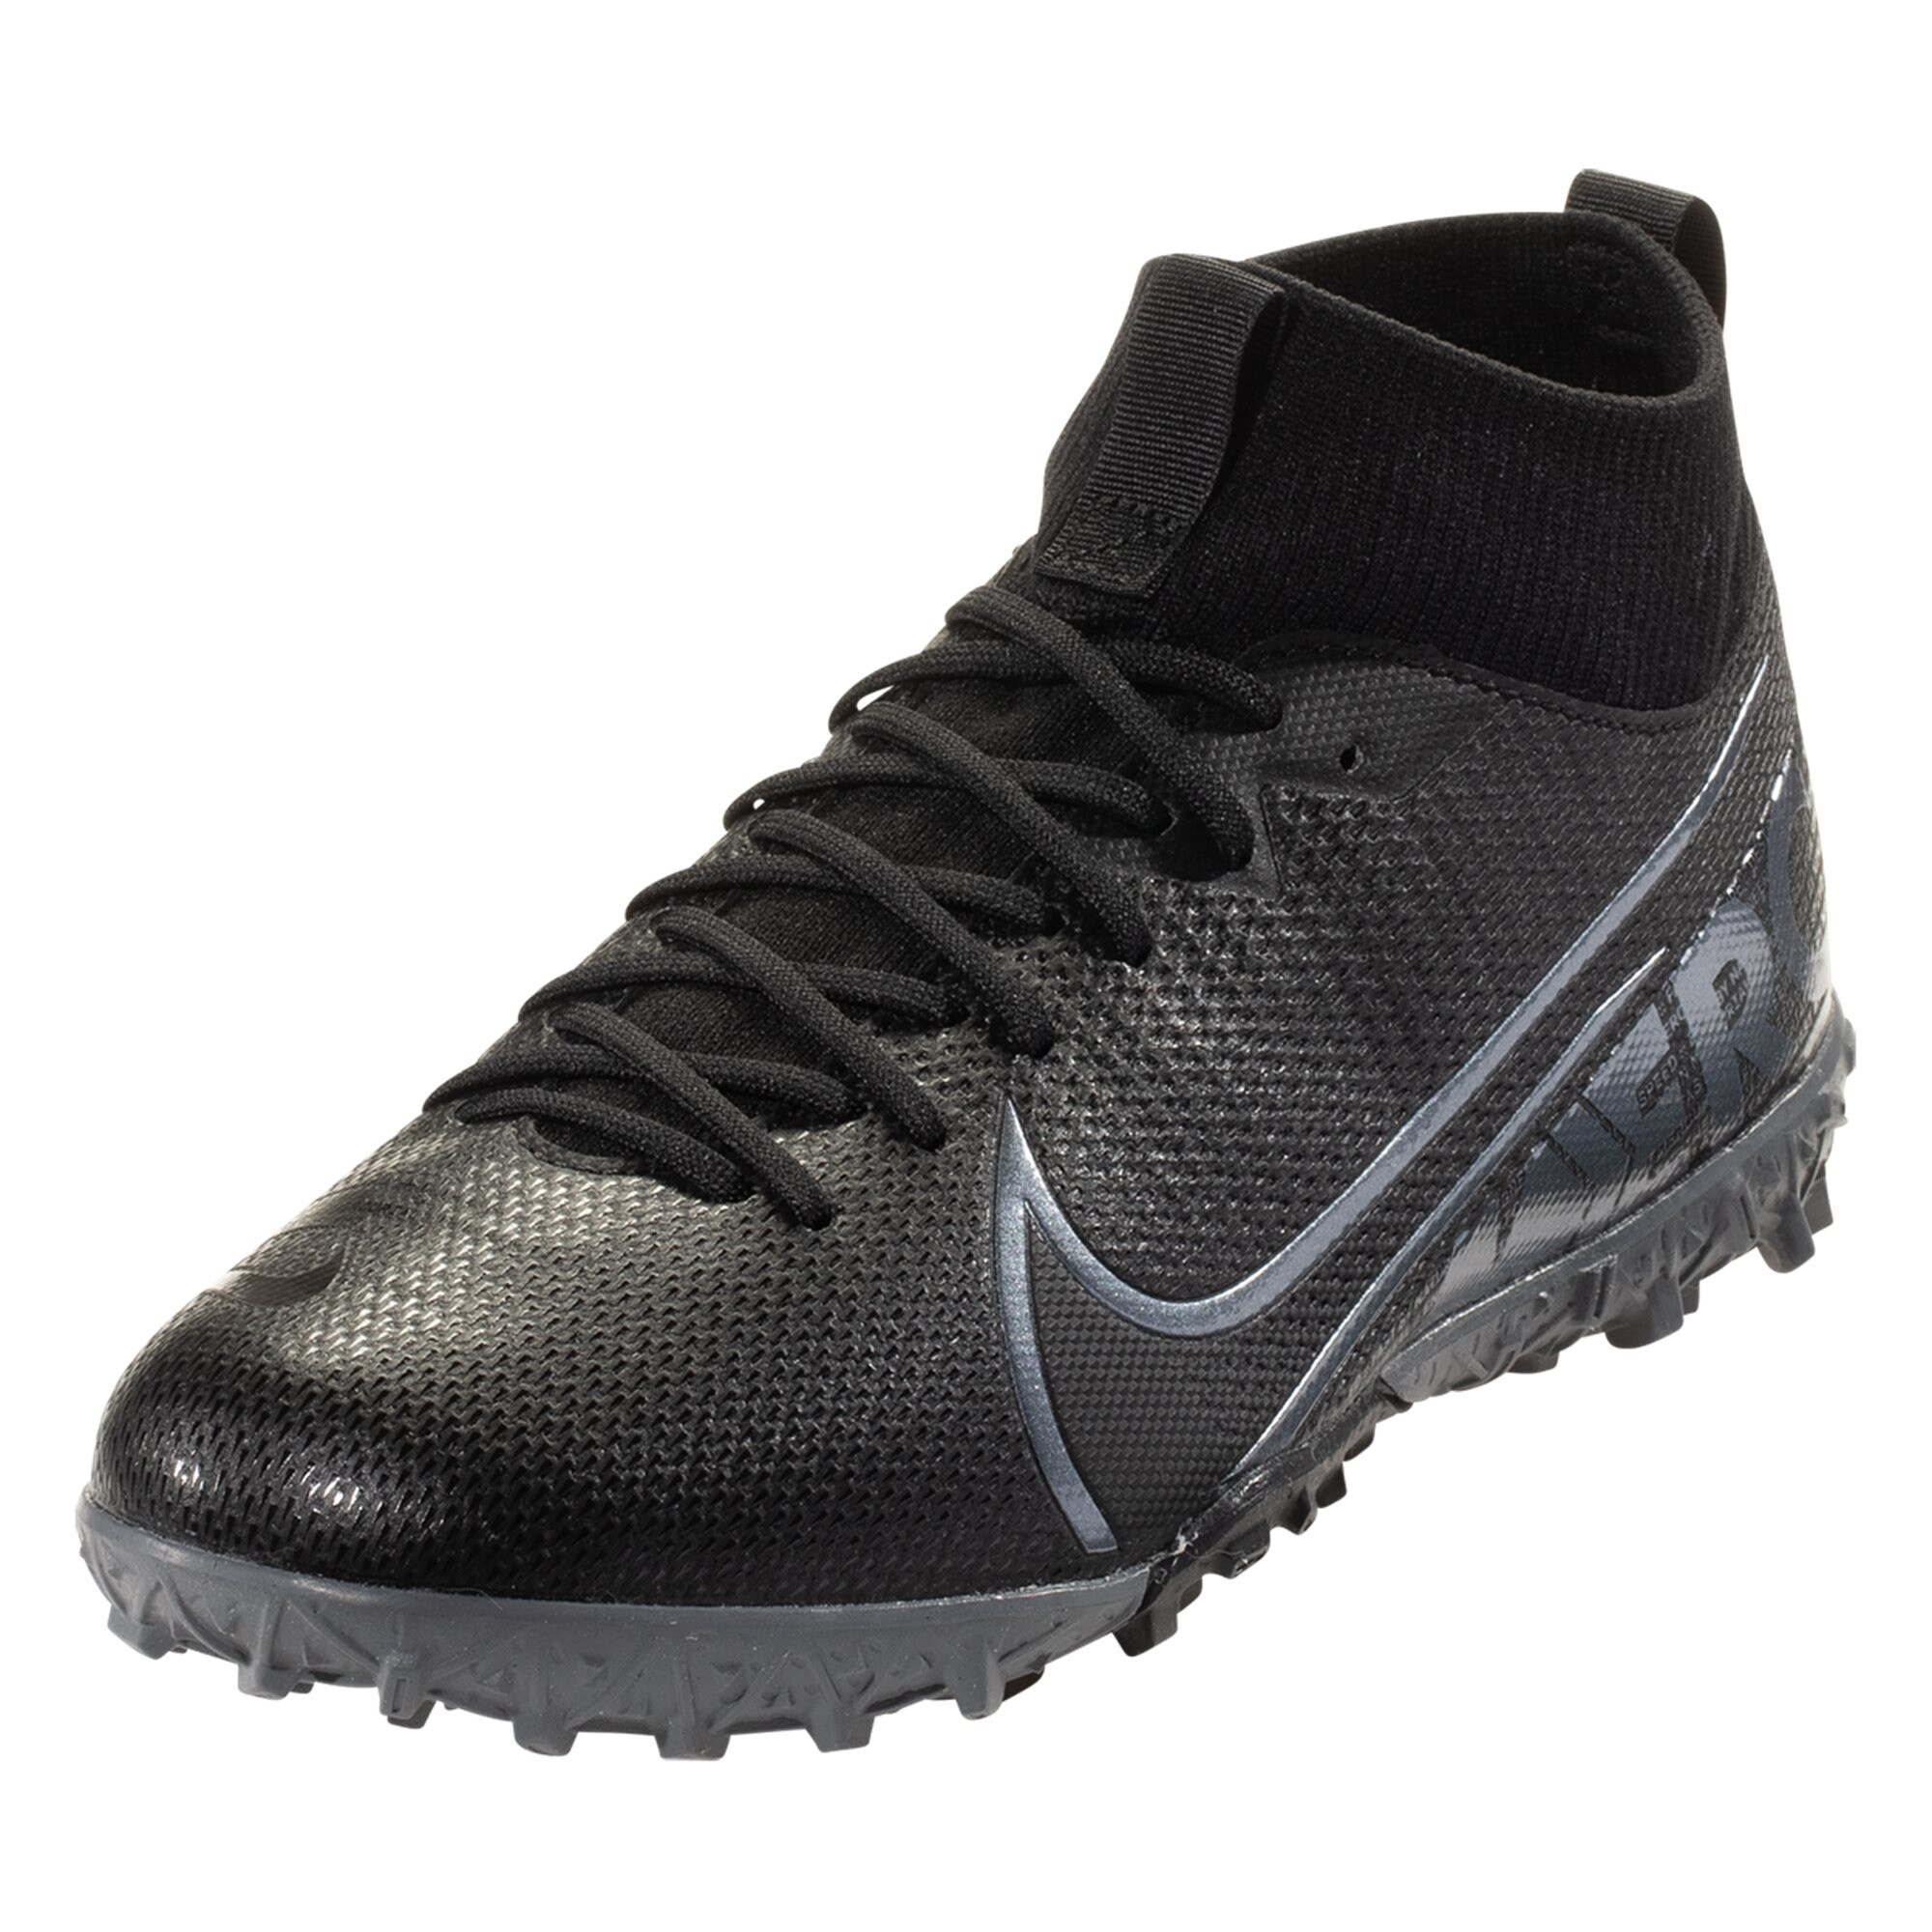 Nike Mercurial Superfly 7 Academy TF Soccer Shoe - Black / Metallic Grey / Grey